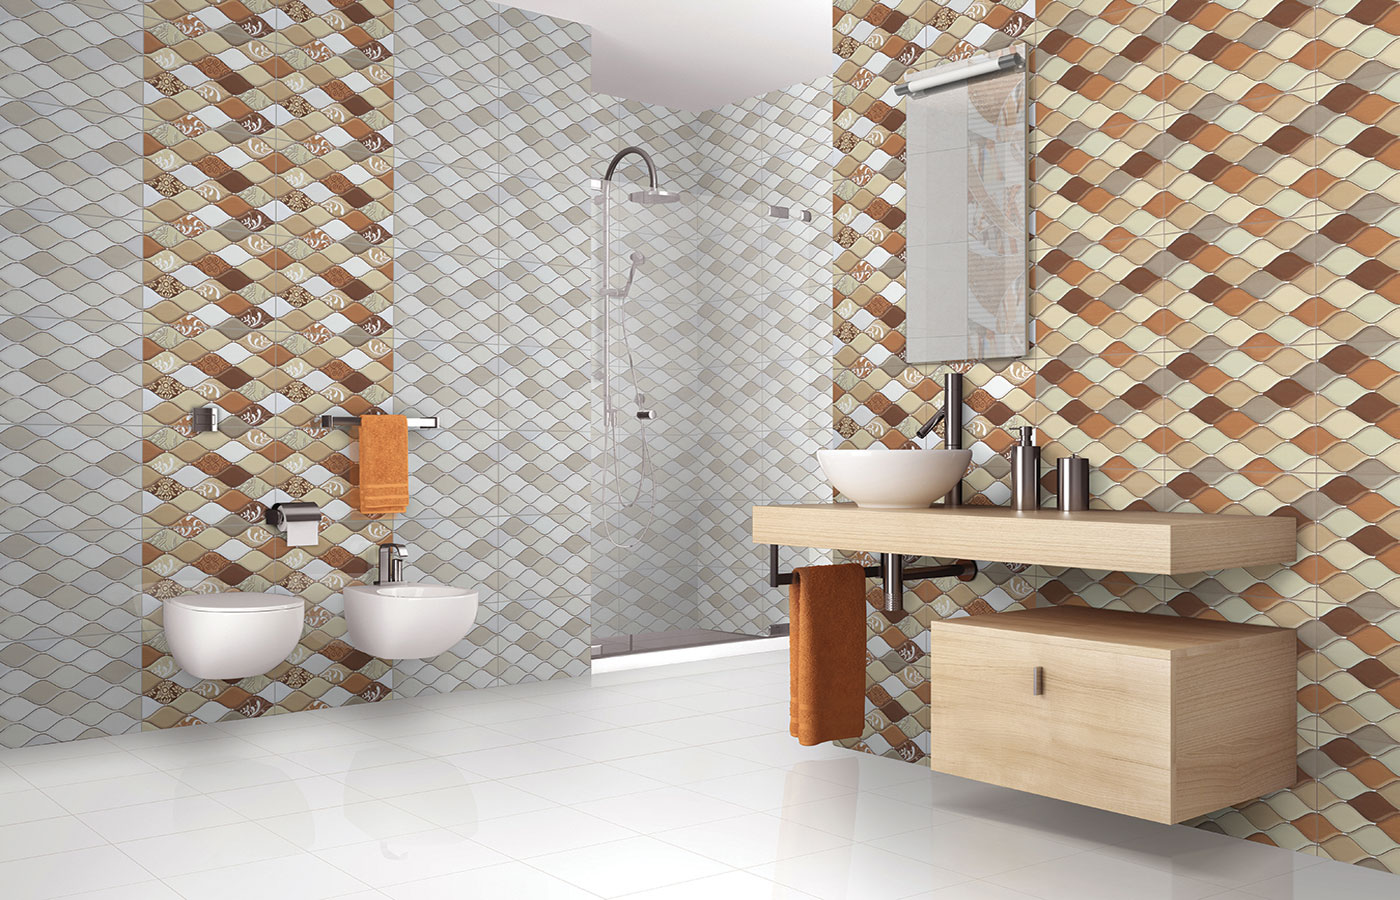 21 unique bathroom tile designs ideas and pictures Unique floor tile designs